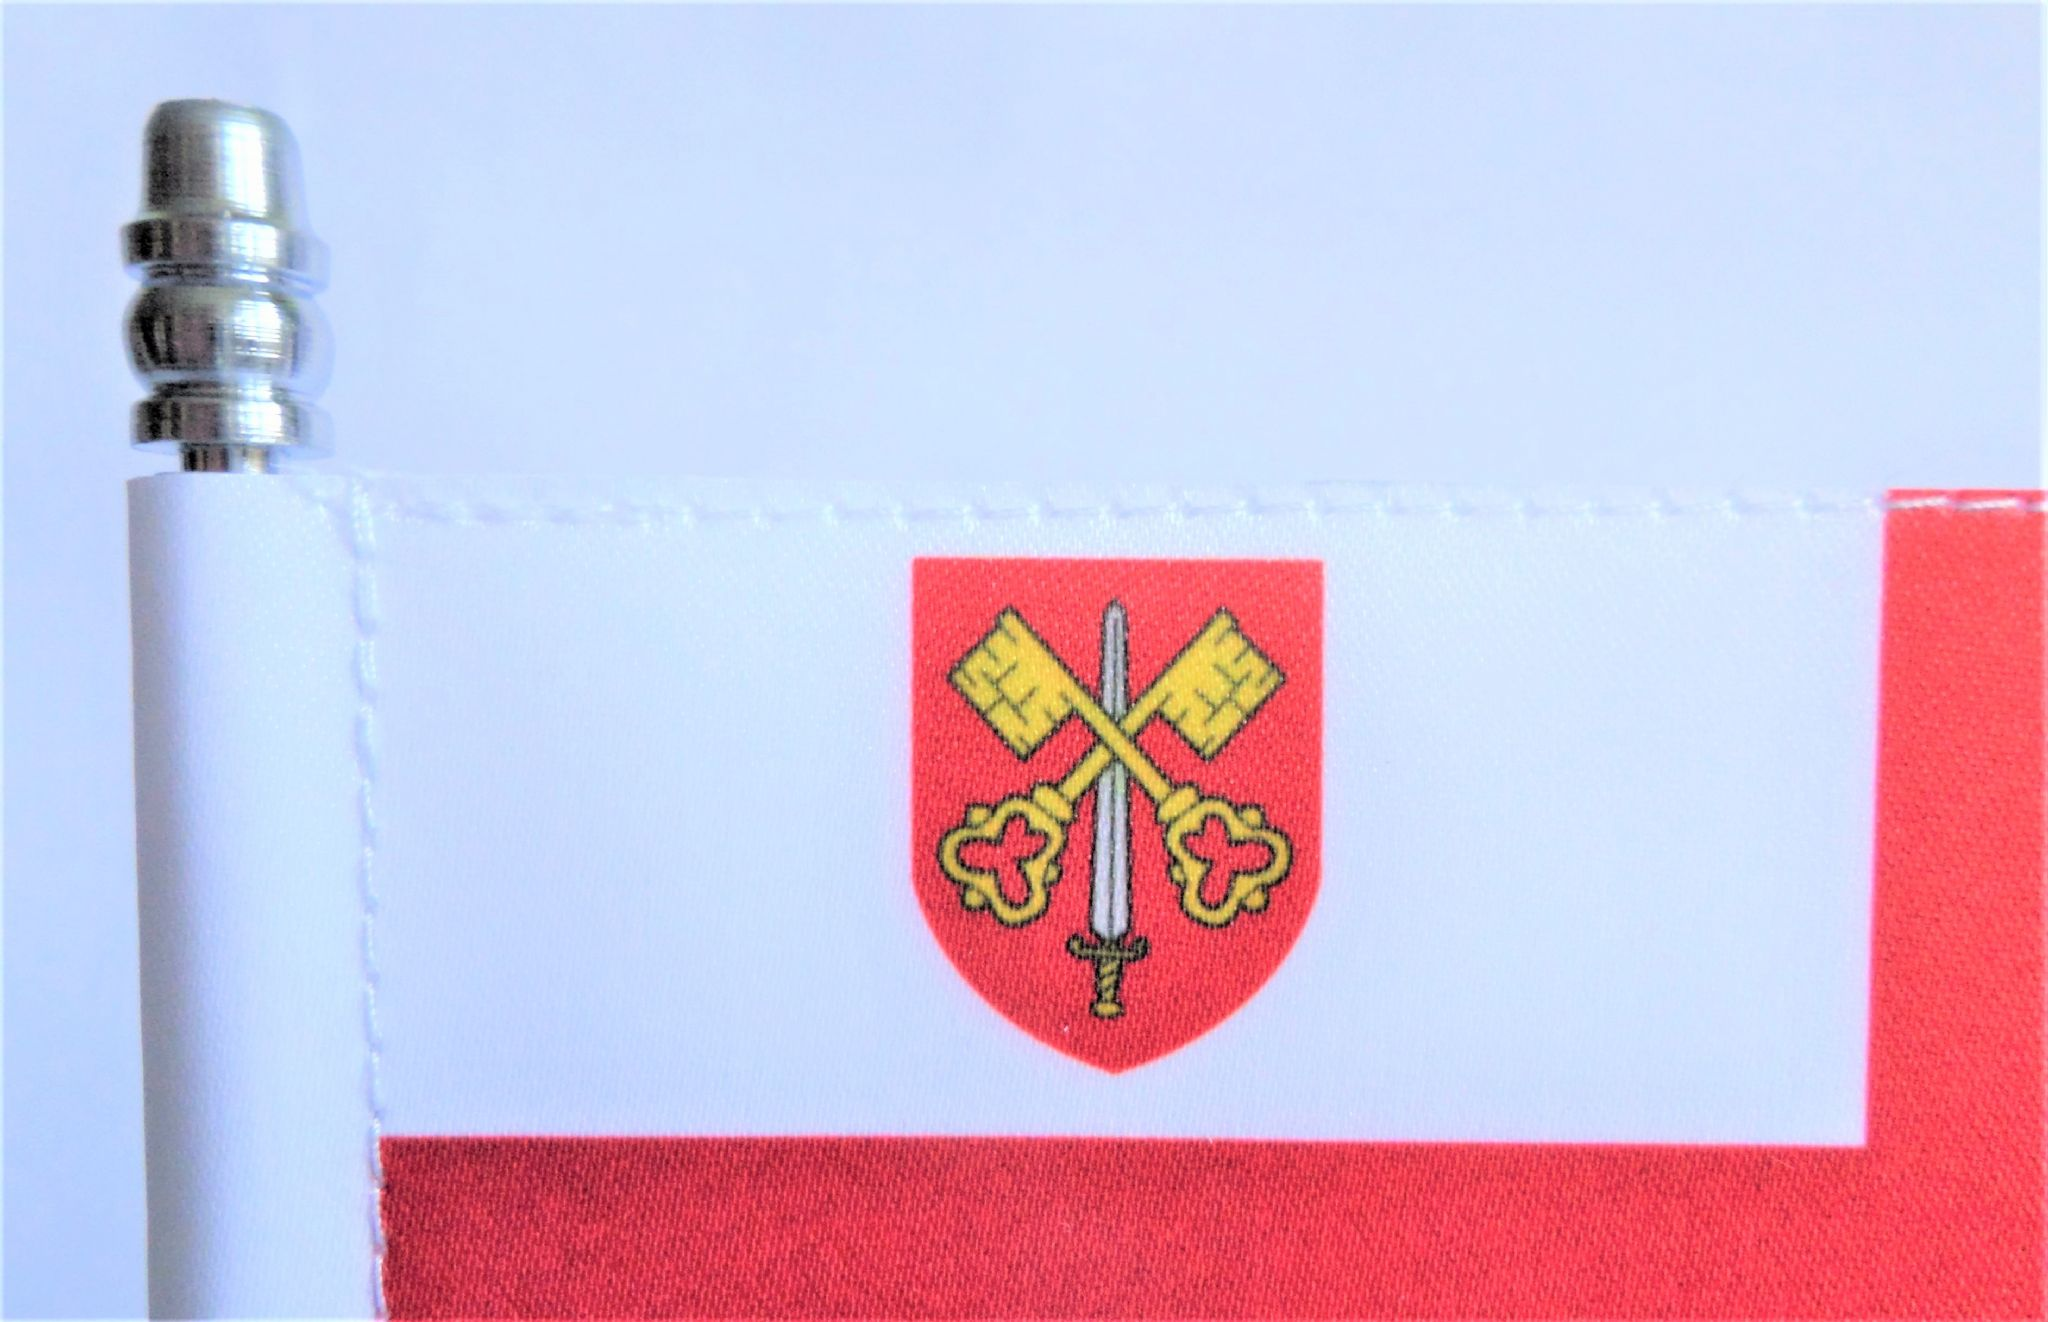 diocese church of england ultimate table flag 714